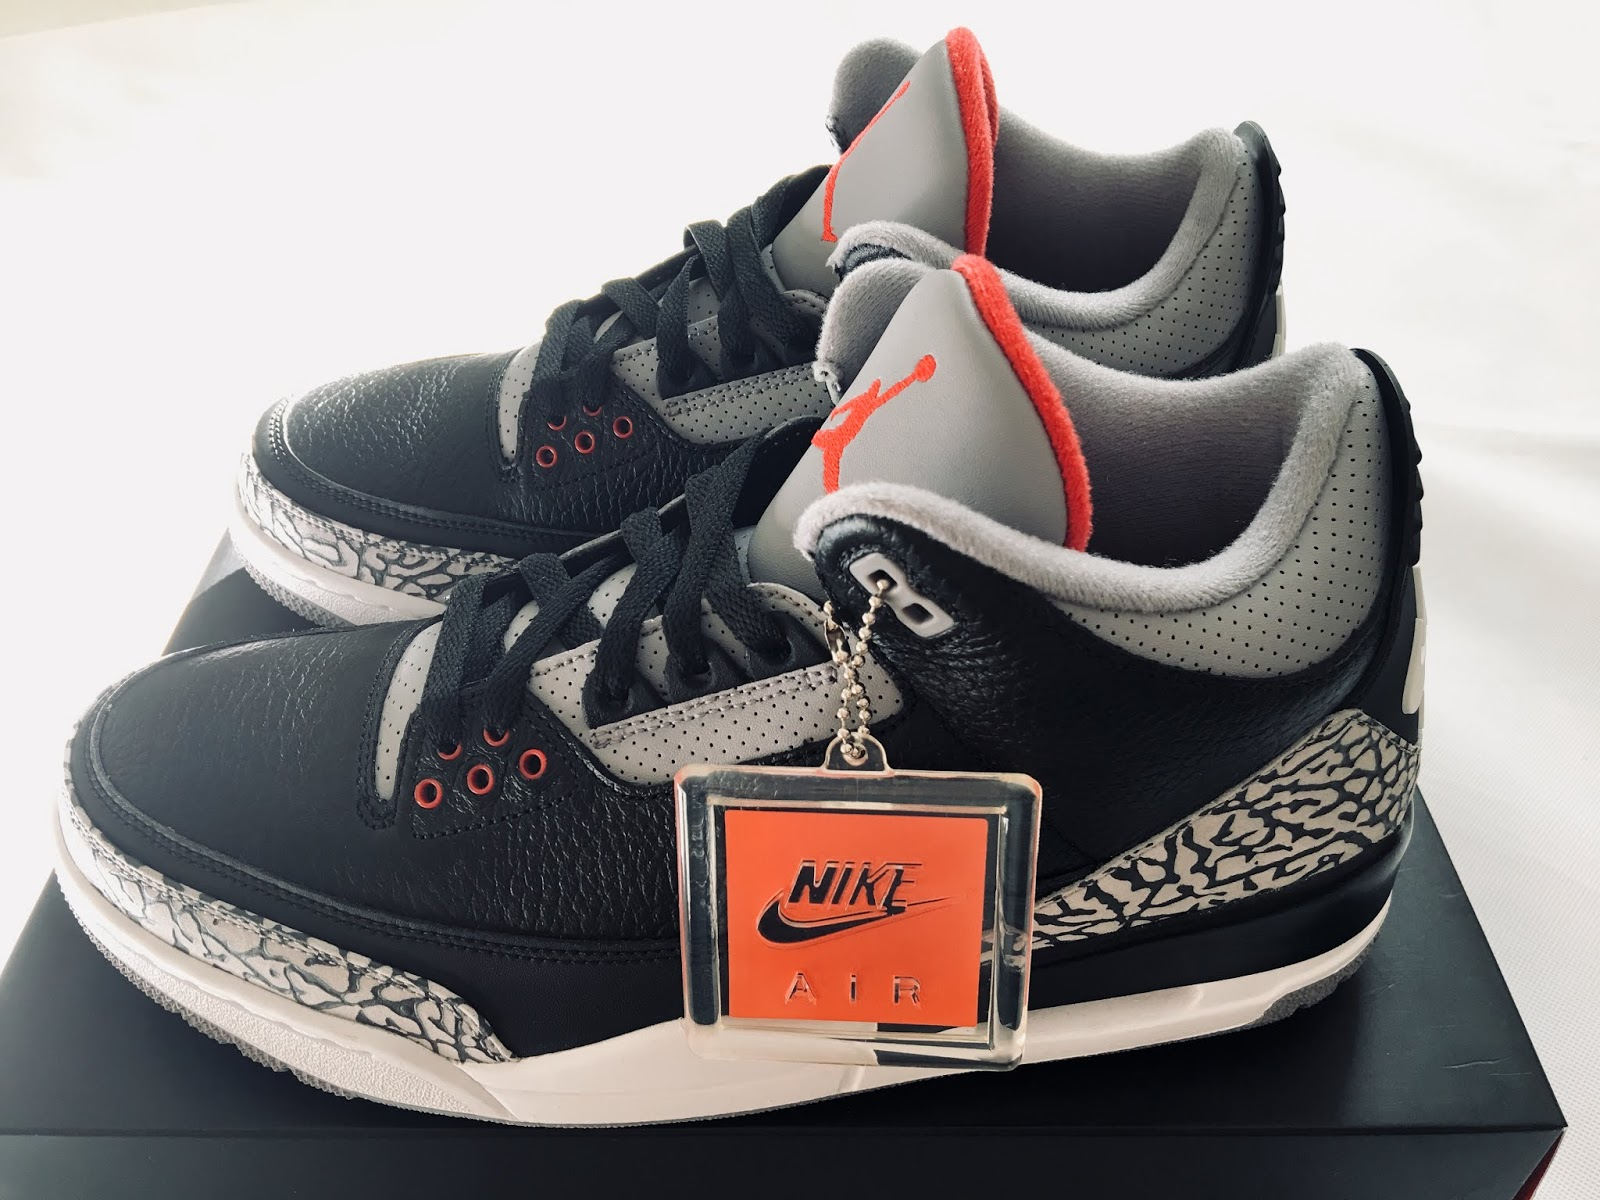 41784fd1de23 Air Jordan 3 Retro OG Black Cement 854262-001